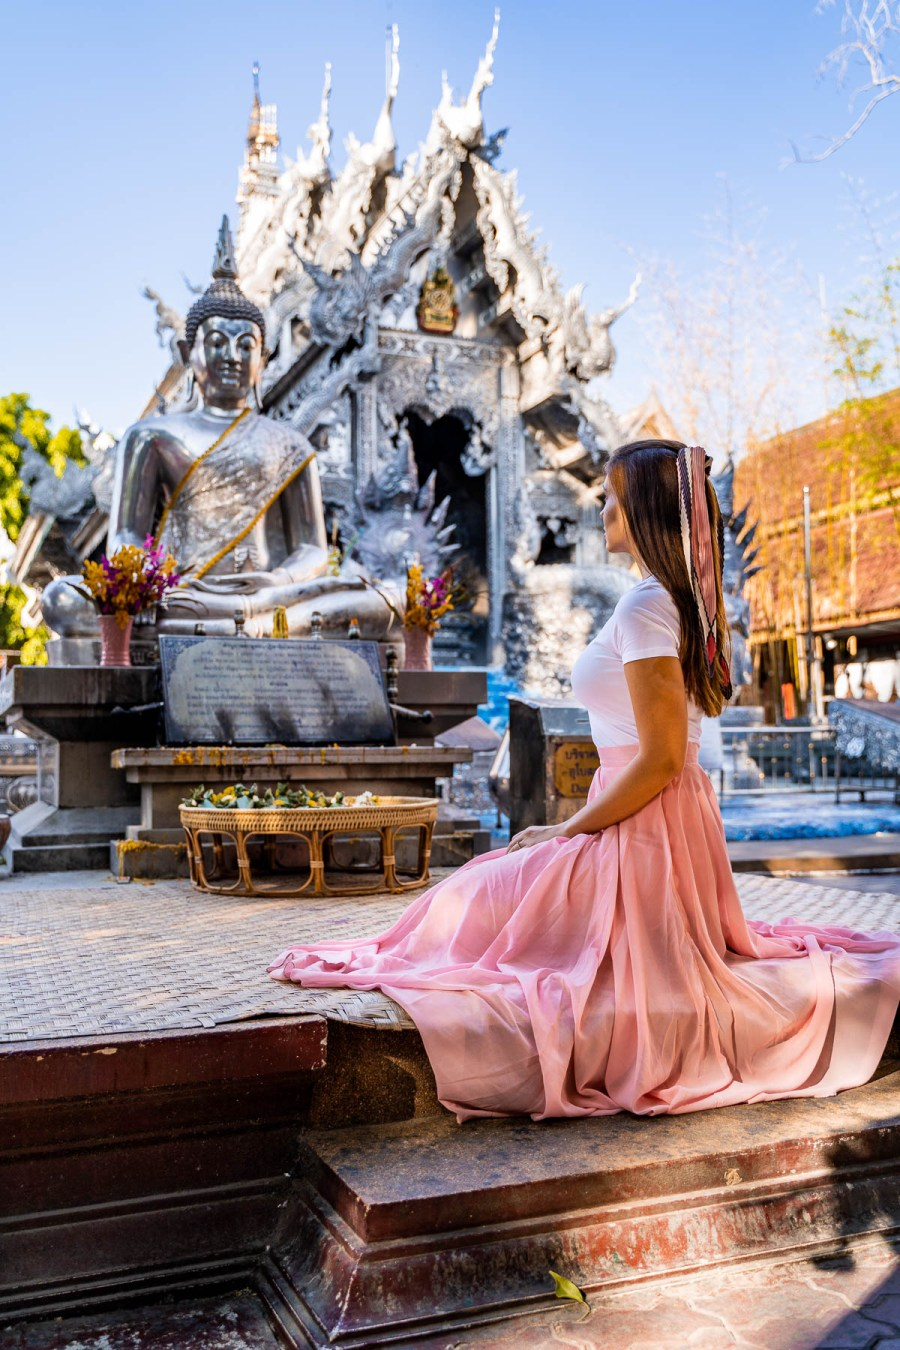 Wat Sri Suphan, the Silver Temple in Chiang Mai, Thailand with girl in a pink skirt in the middle